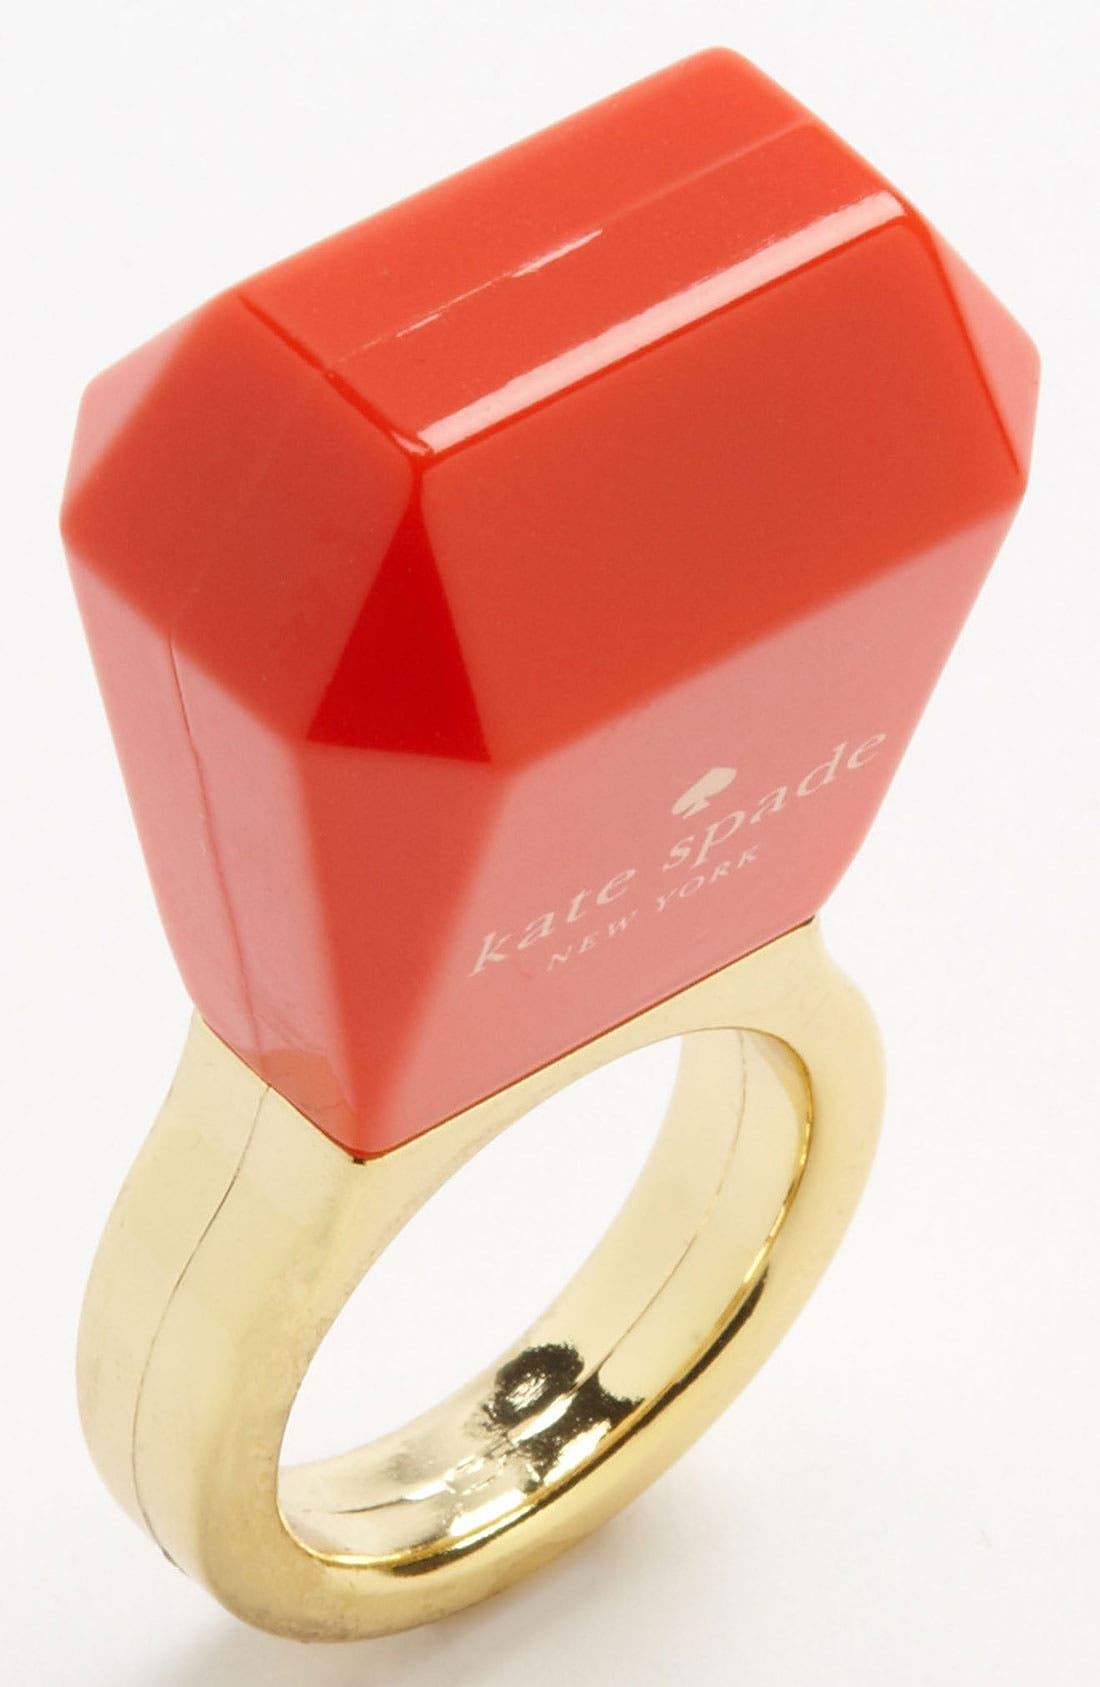 Alternate Image 1 Selected - kate spade new york 'ring' USB drive